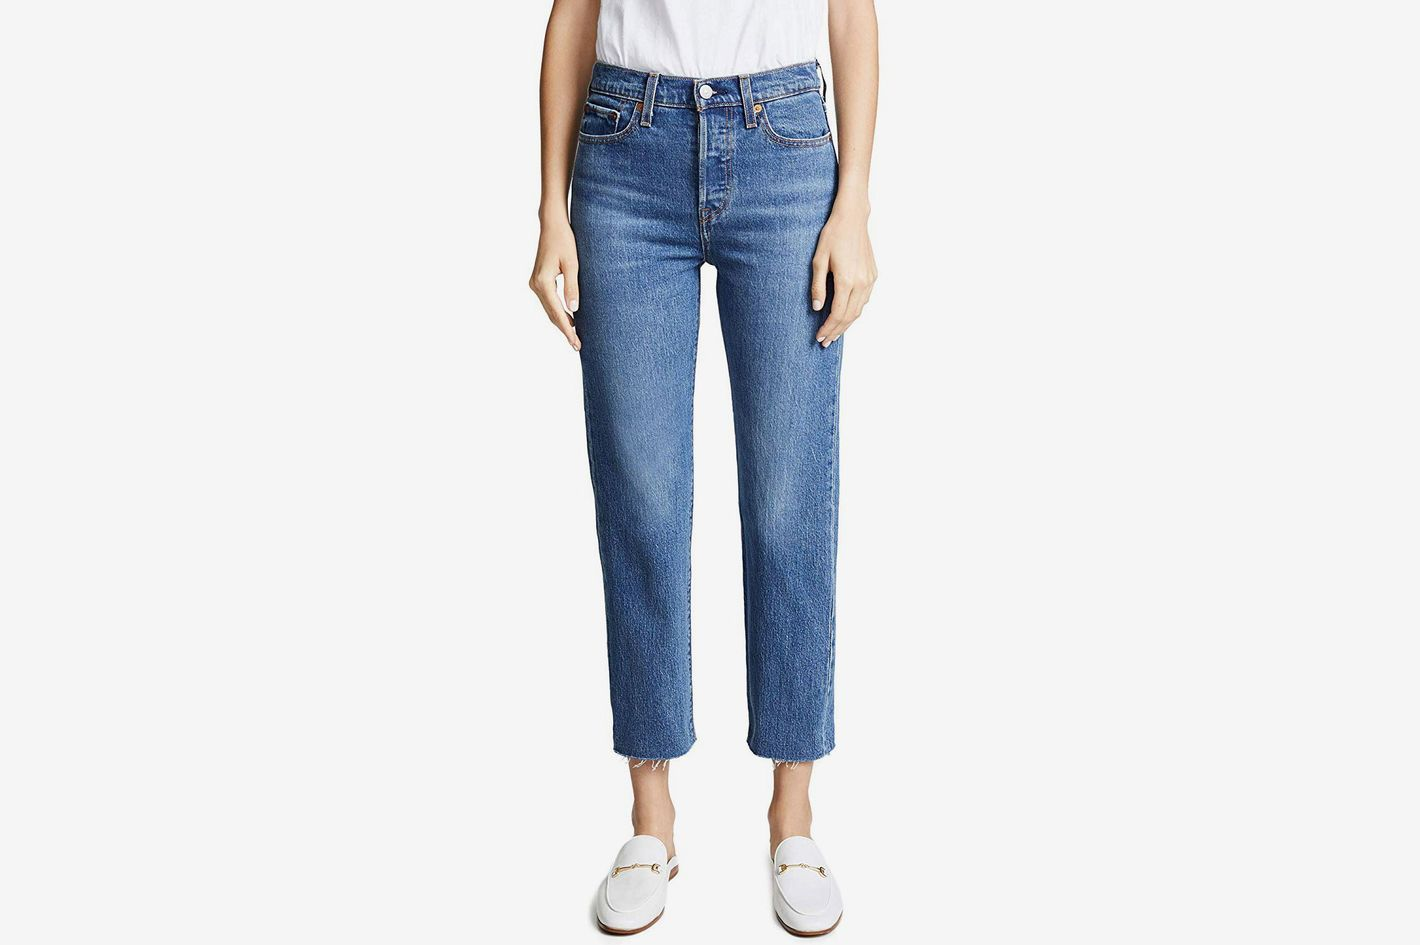 deb40cefa07 Levi's Wedgie Straight Fit Jeans at Amazon